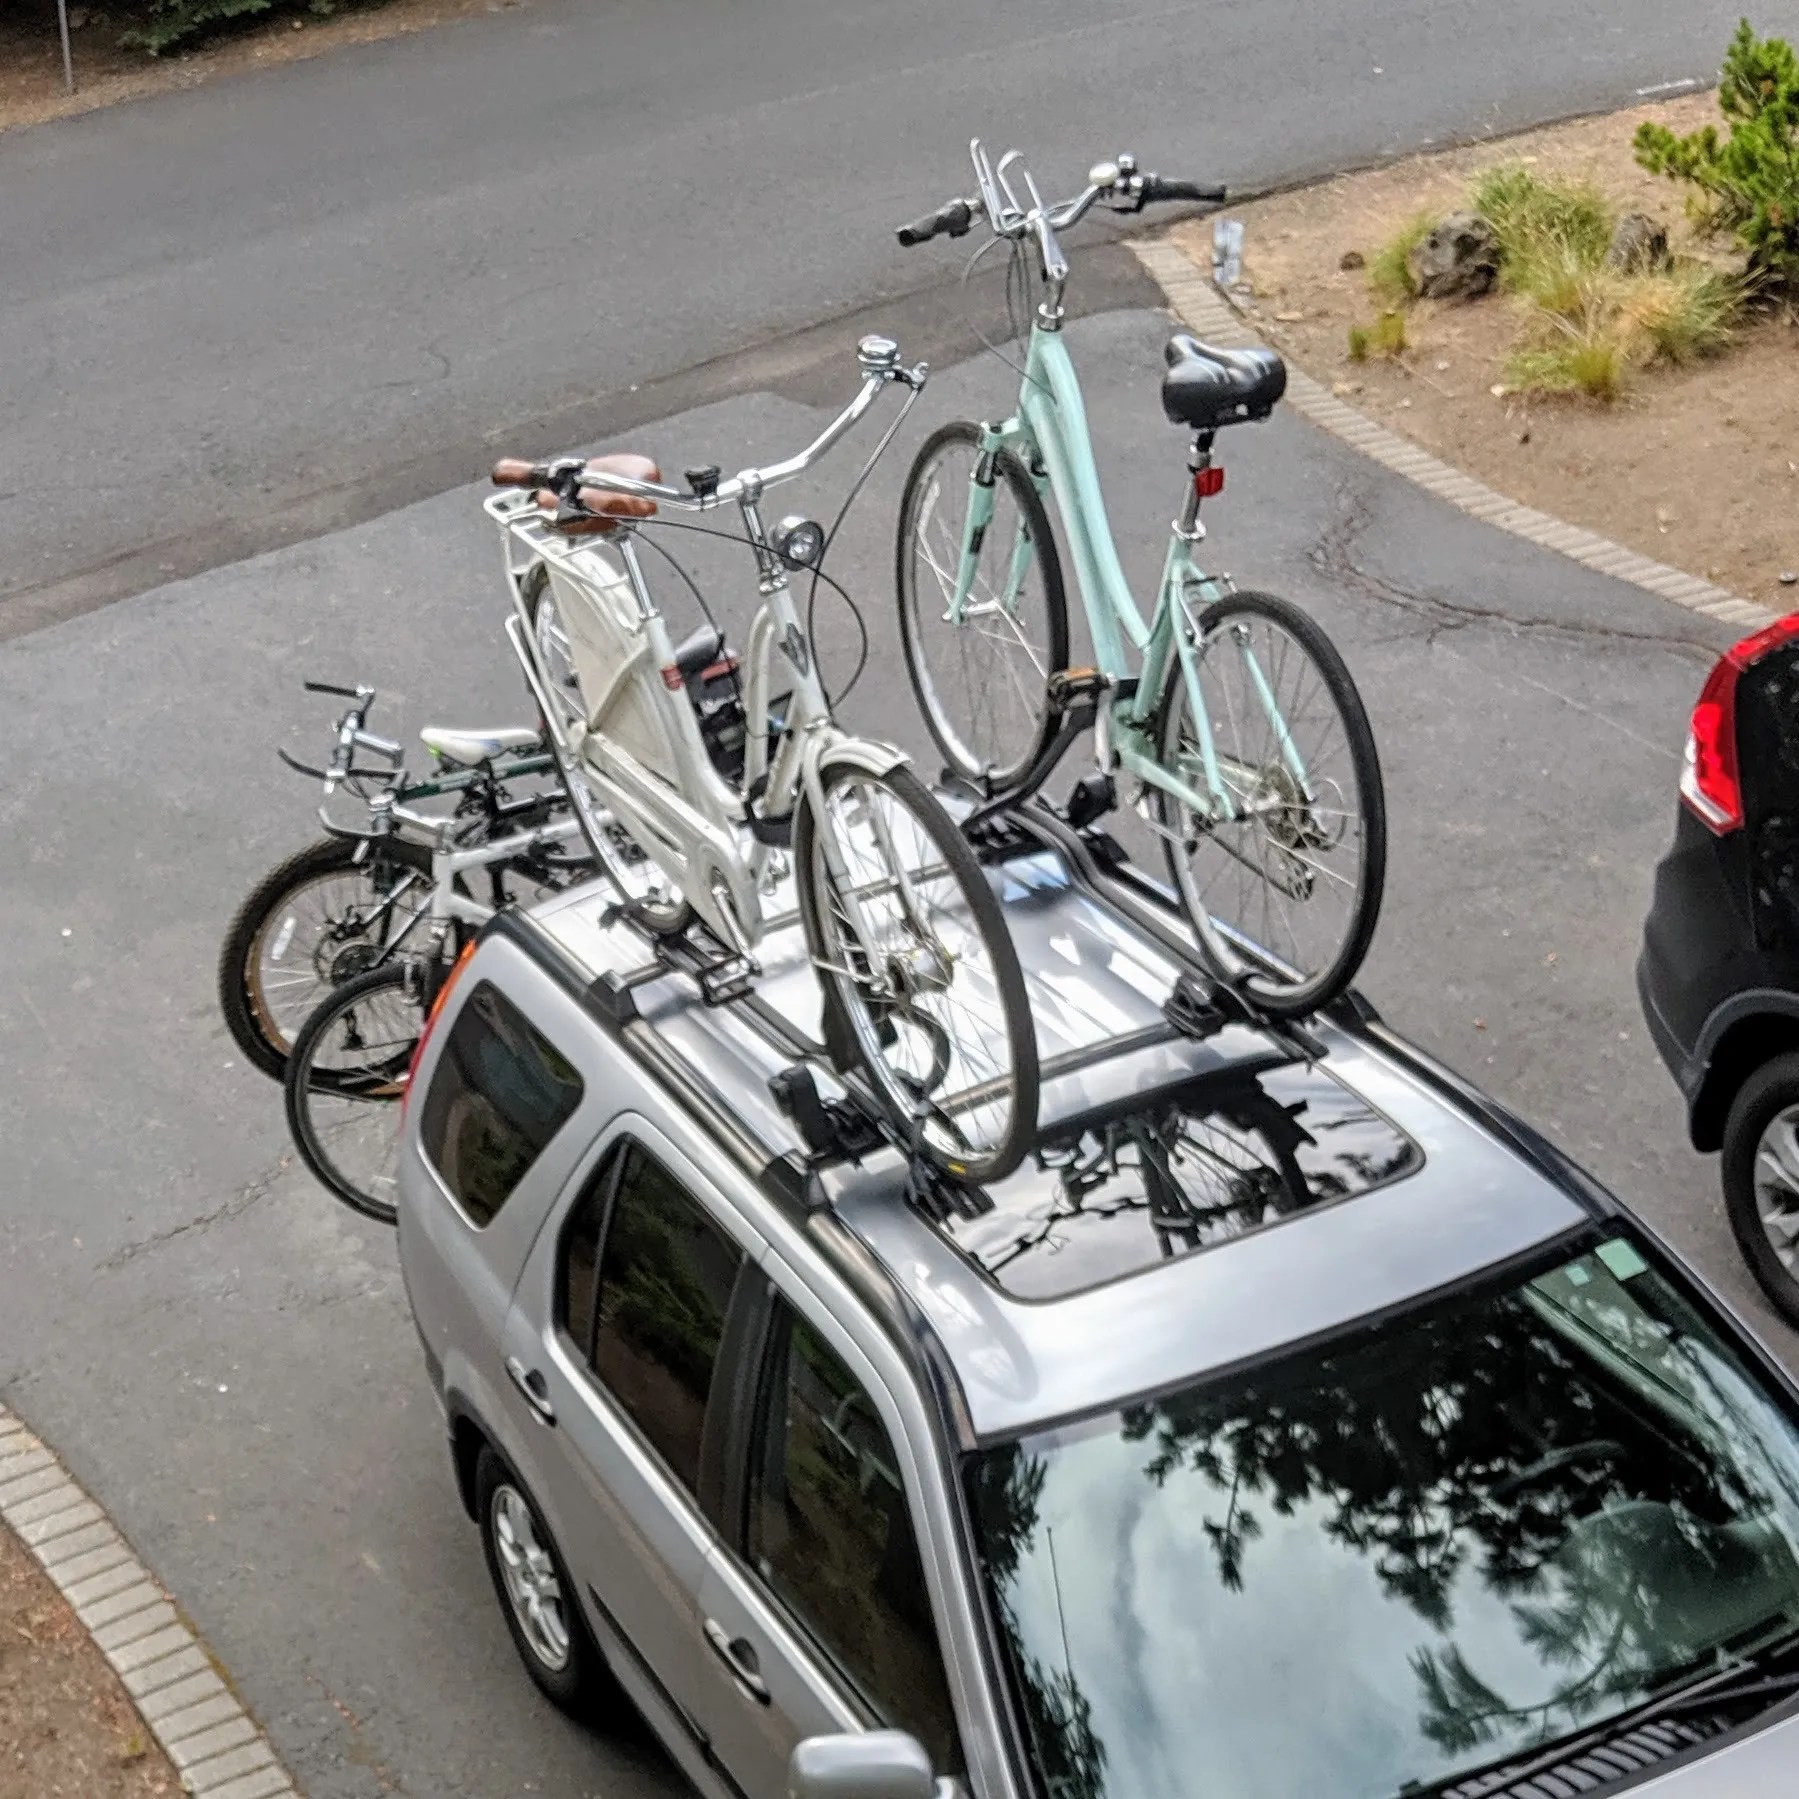 5 bikes on the car. Could've fit another one... ;-)